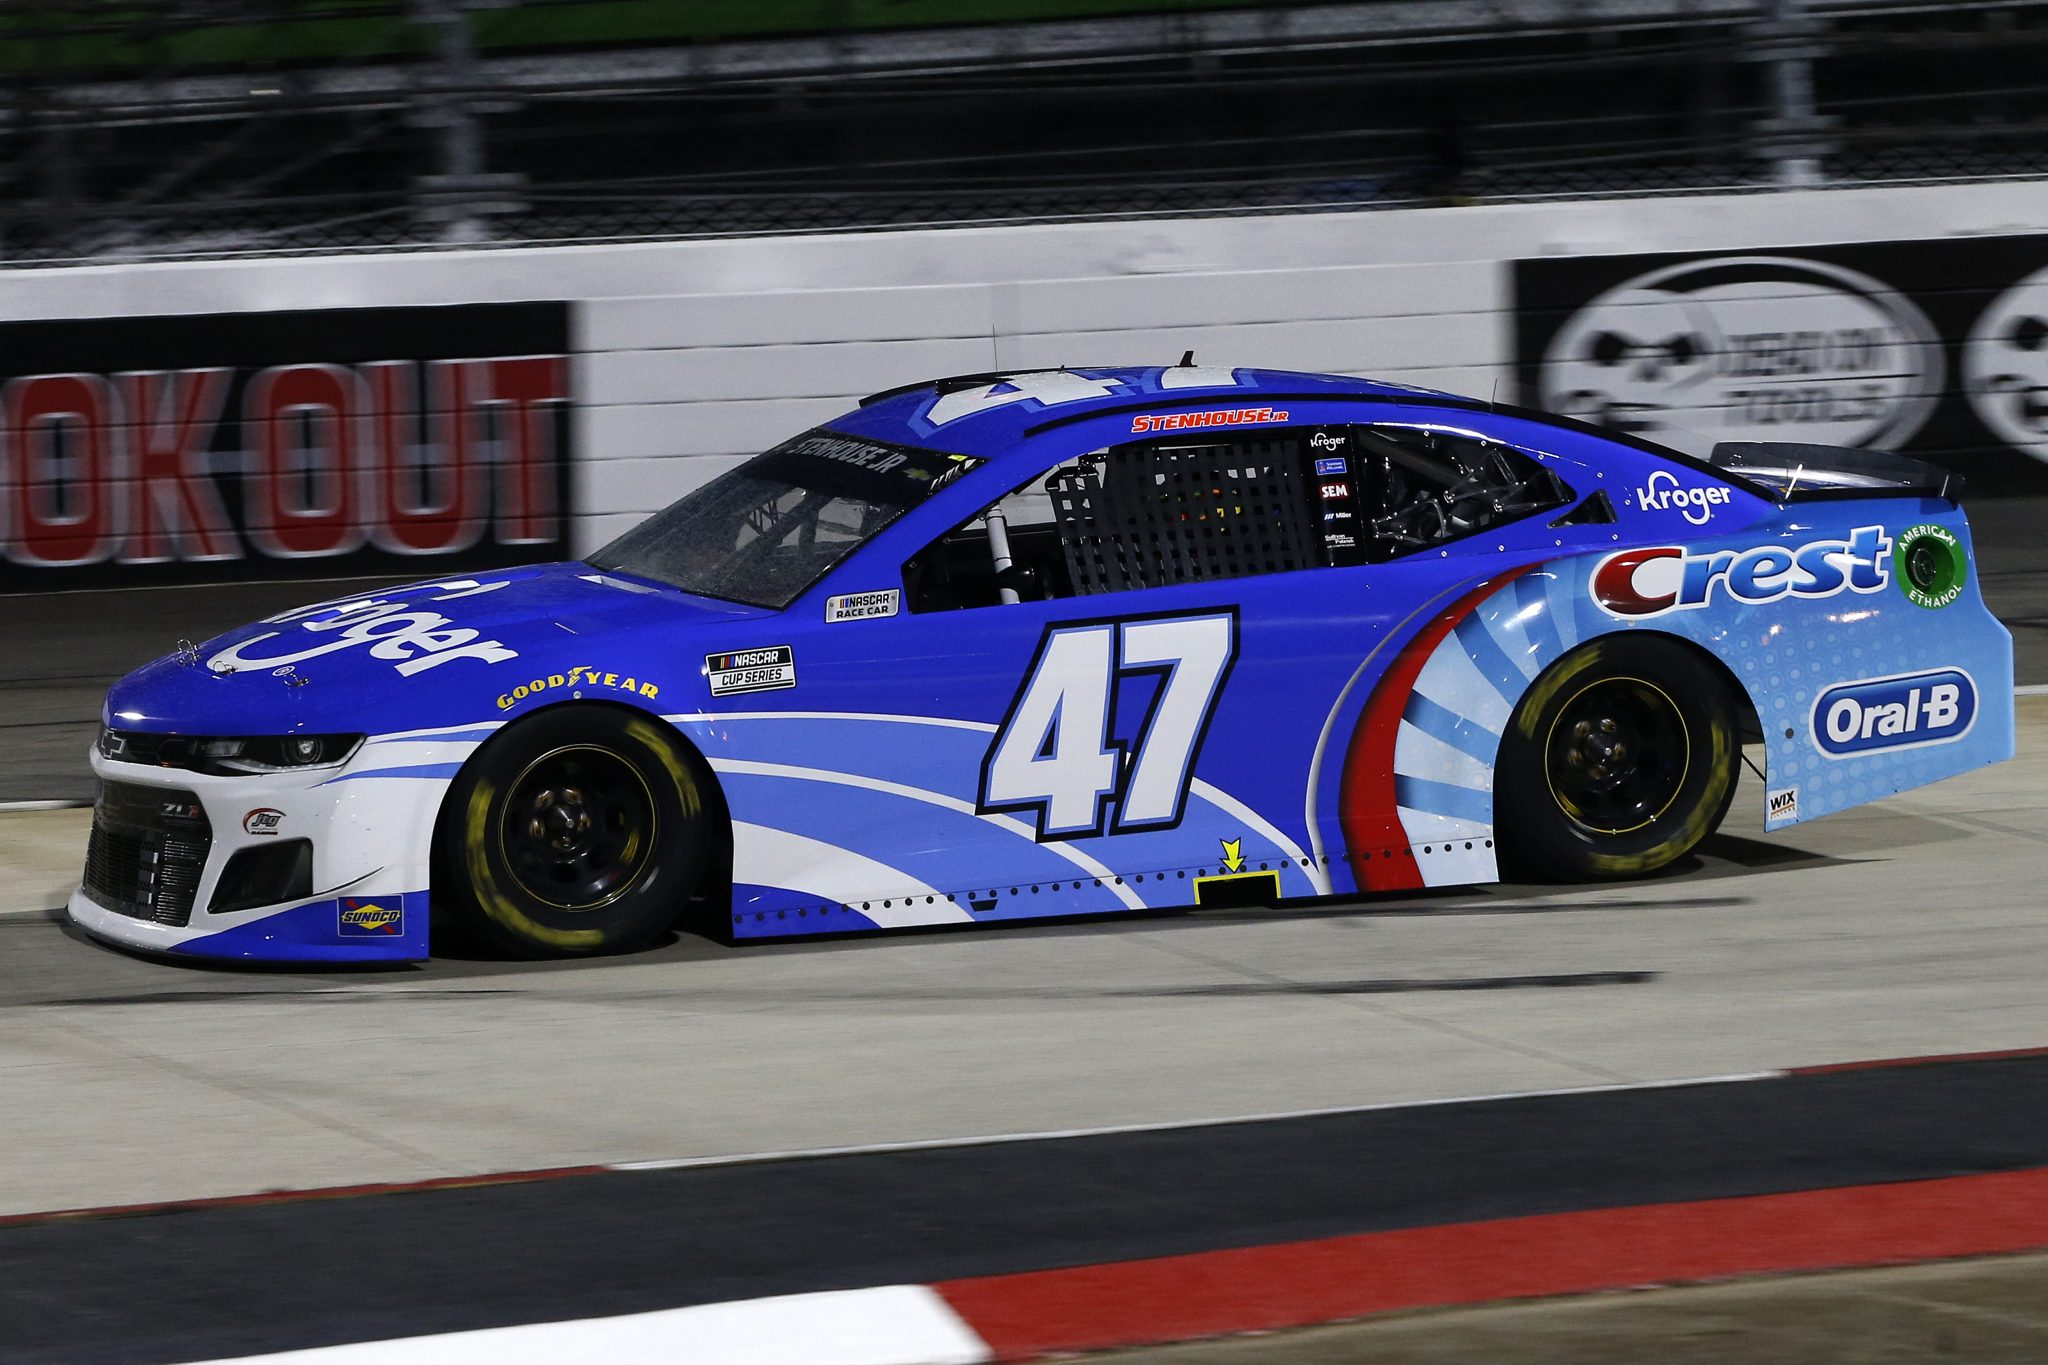 MARTINSVILLE, VIRGINIA - APRIL 10: Ricky Stenhouse Jr., driver of the #47 Kroger/Crest Chevrolet, drives during the NASCAR Cup Series Blue-Emu Maximum Pain Relief 500 at Martinsville Speedway on April 10, 2021 in Martinsville, Virginia. (Photo by Brian Lawdermilk/Getty Images) | Getty Images